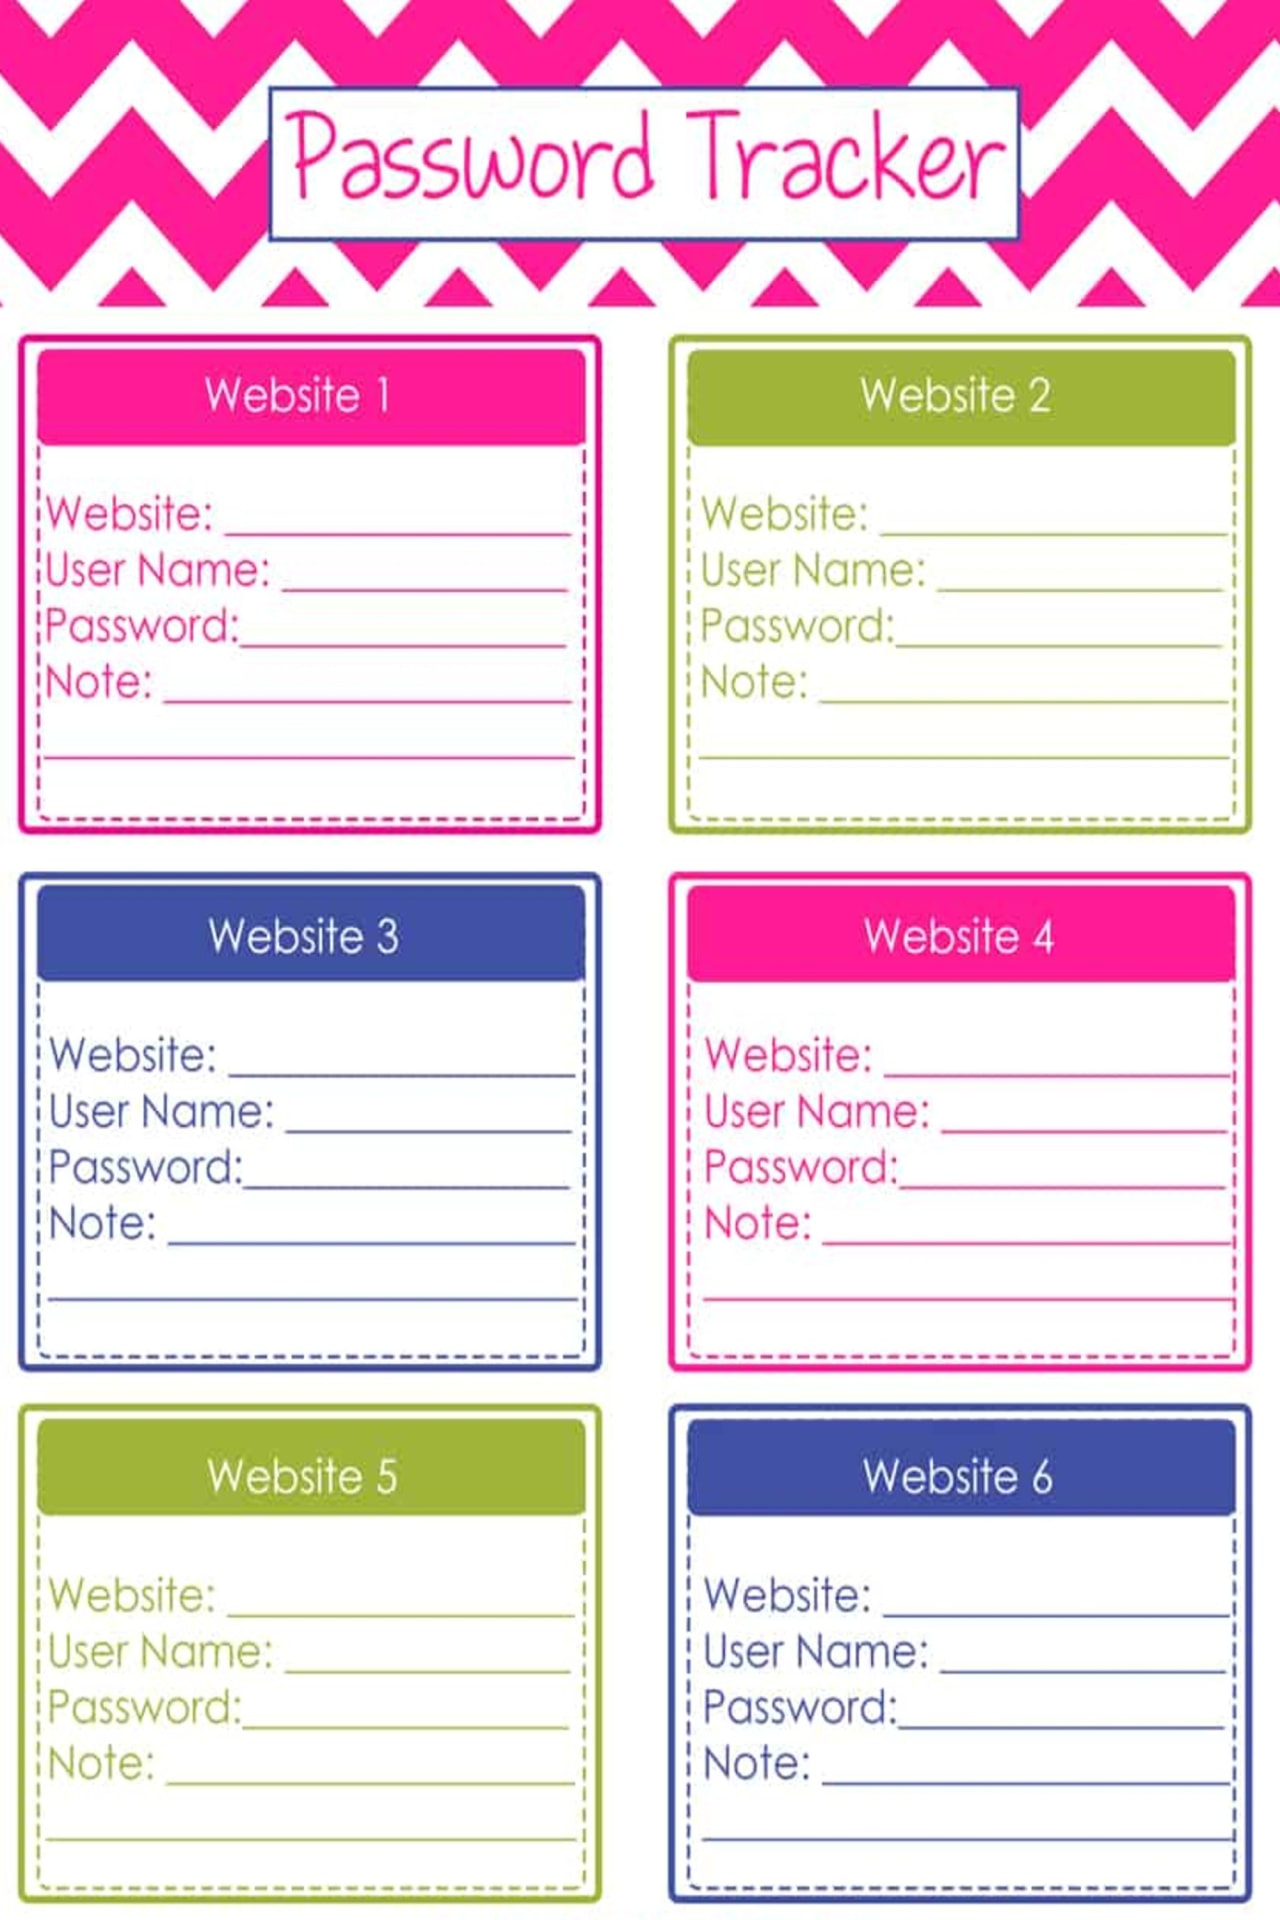 Free Password Trackers and Password Keeper Printable PDFs - how to organize website passwords on paper with a printable password keeper to make a DIY password journal or password organizer binder - it's like your own password vault to track all your online passwords!  Download your free printable password organizers worksheets to make a DIY password book with these free home organizing printables